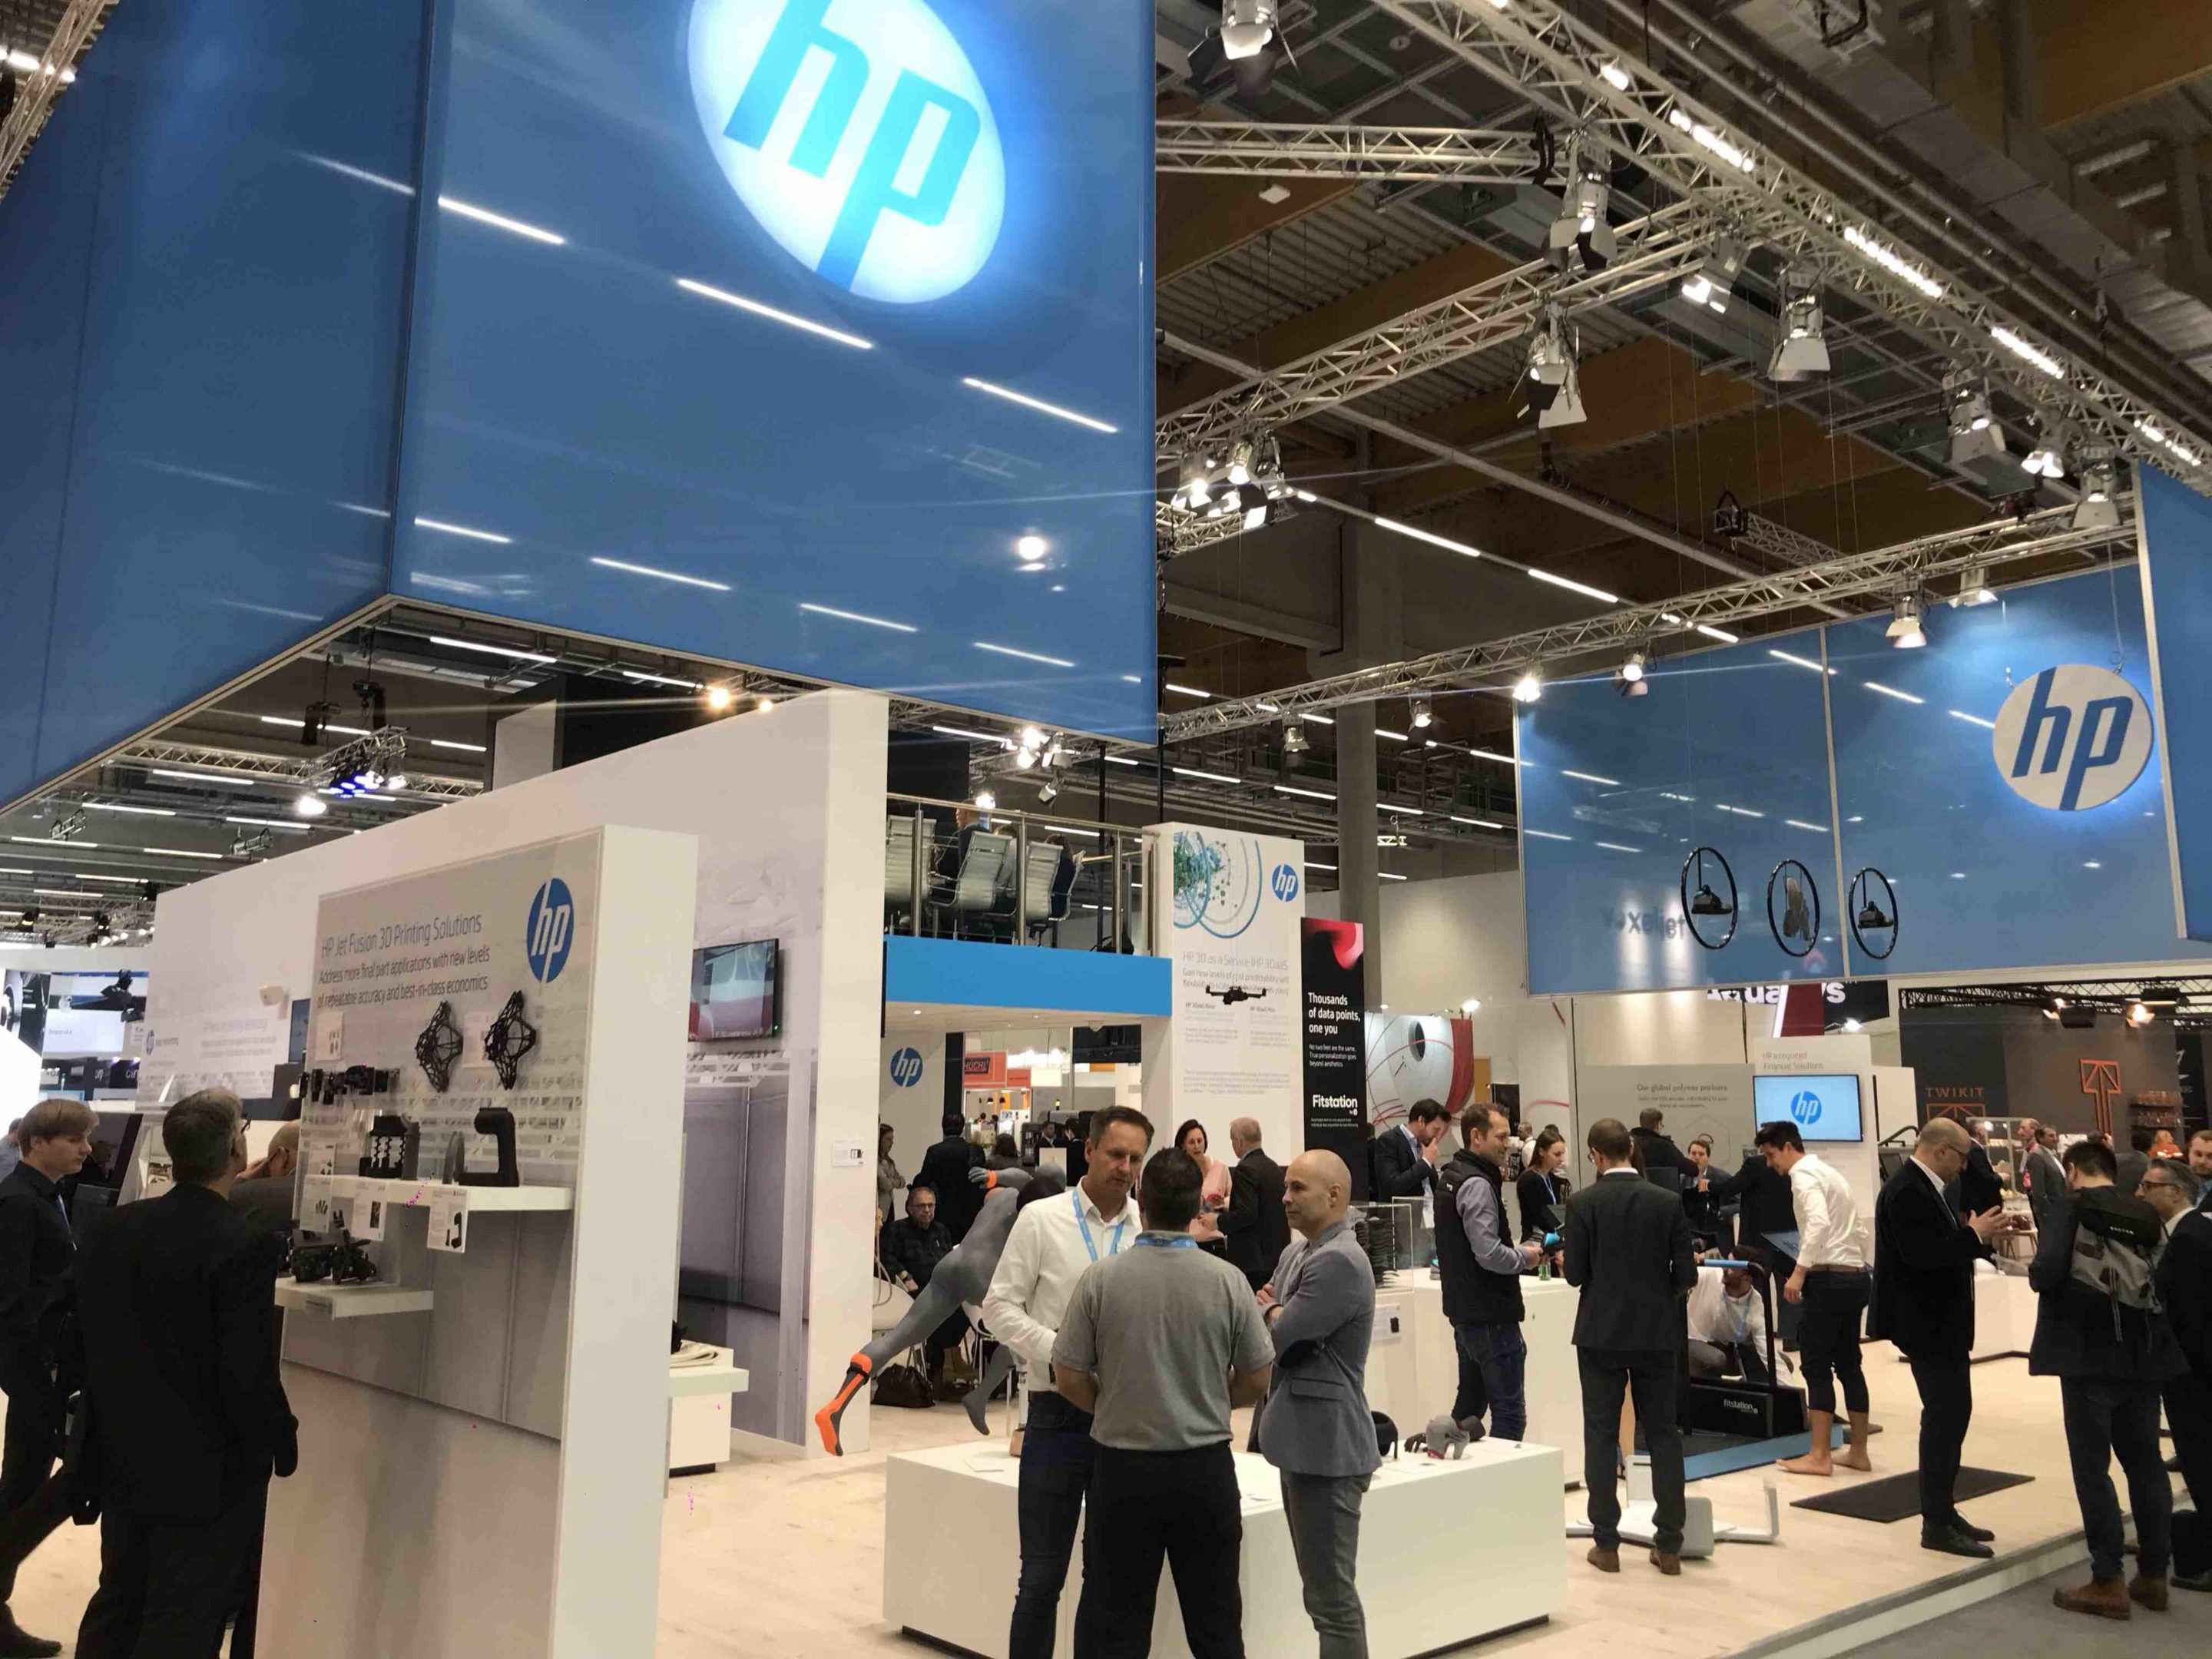 Formnext HP Booth Full